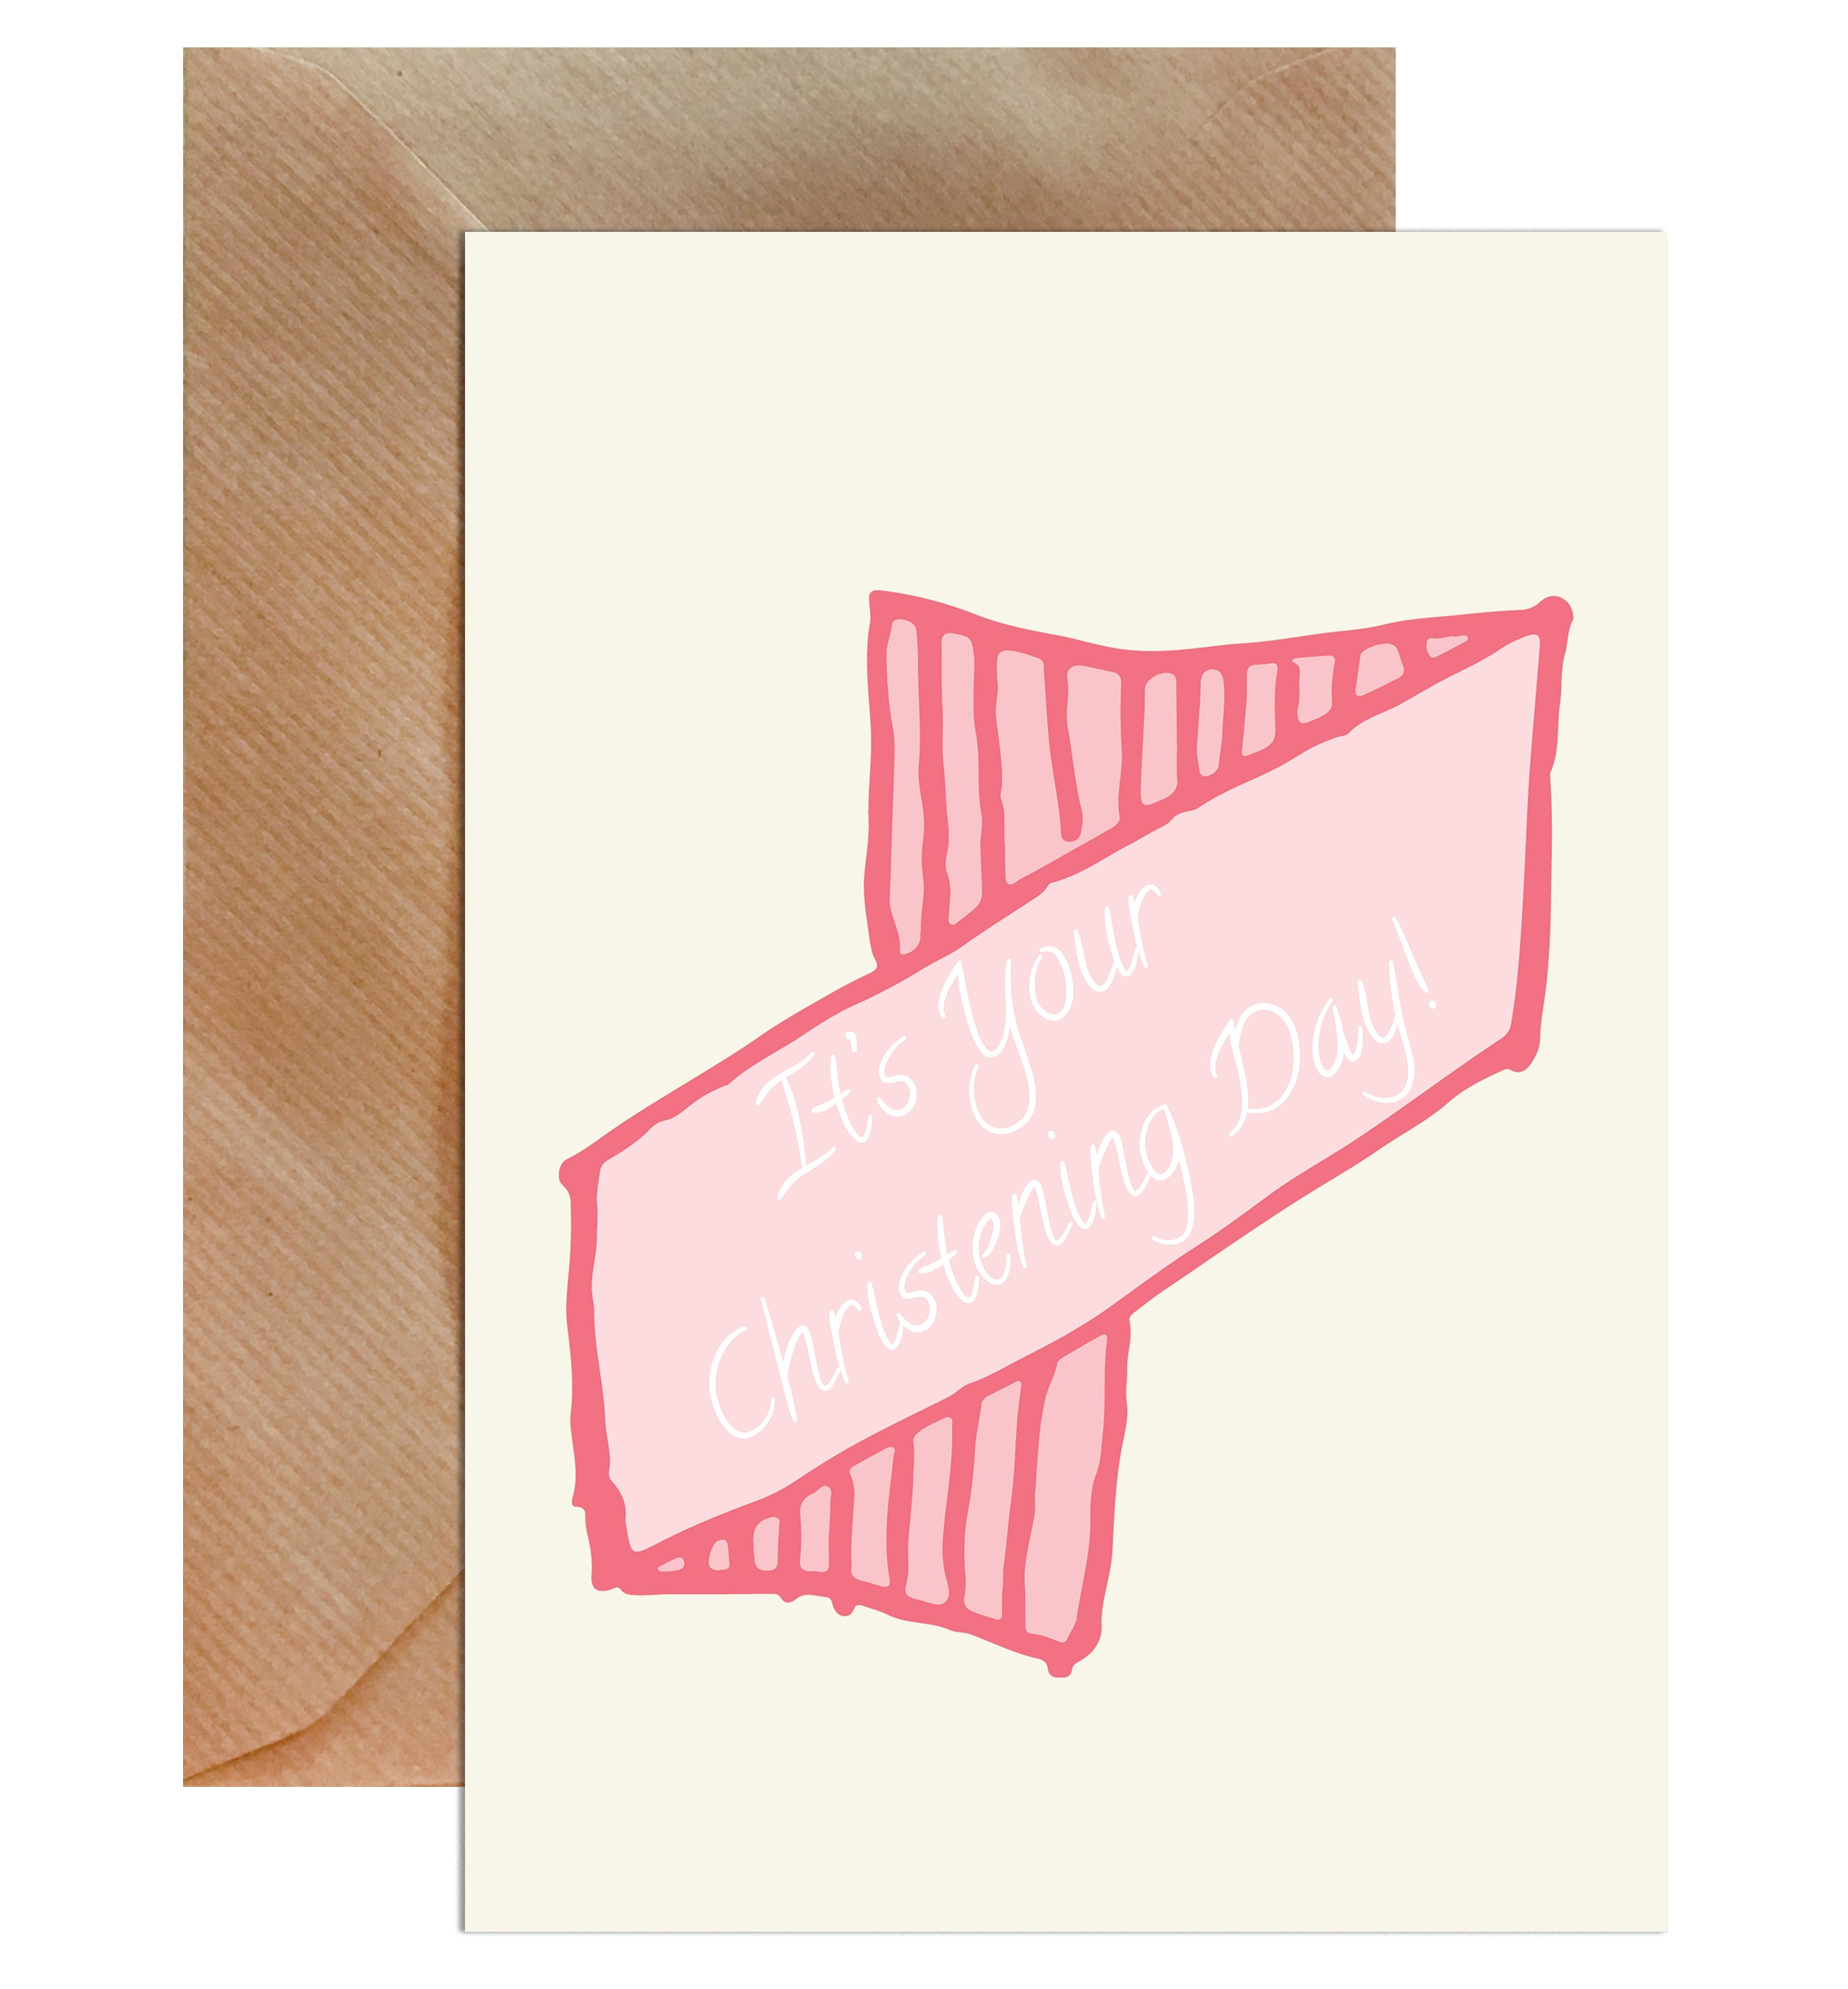 Its your christening day greeting card mode prints its your christening day greeting card m4hsunfo